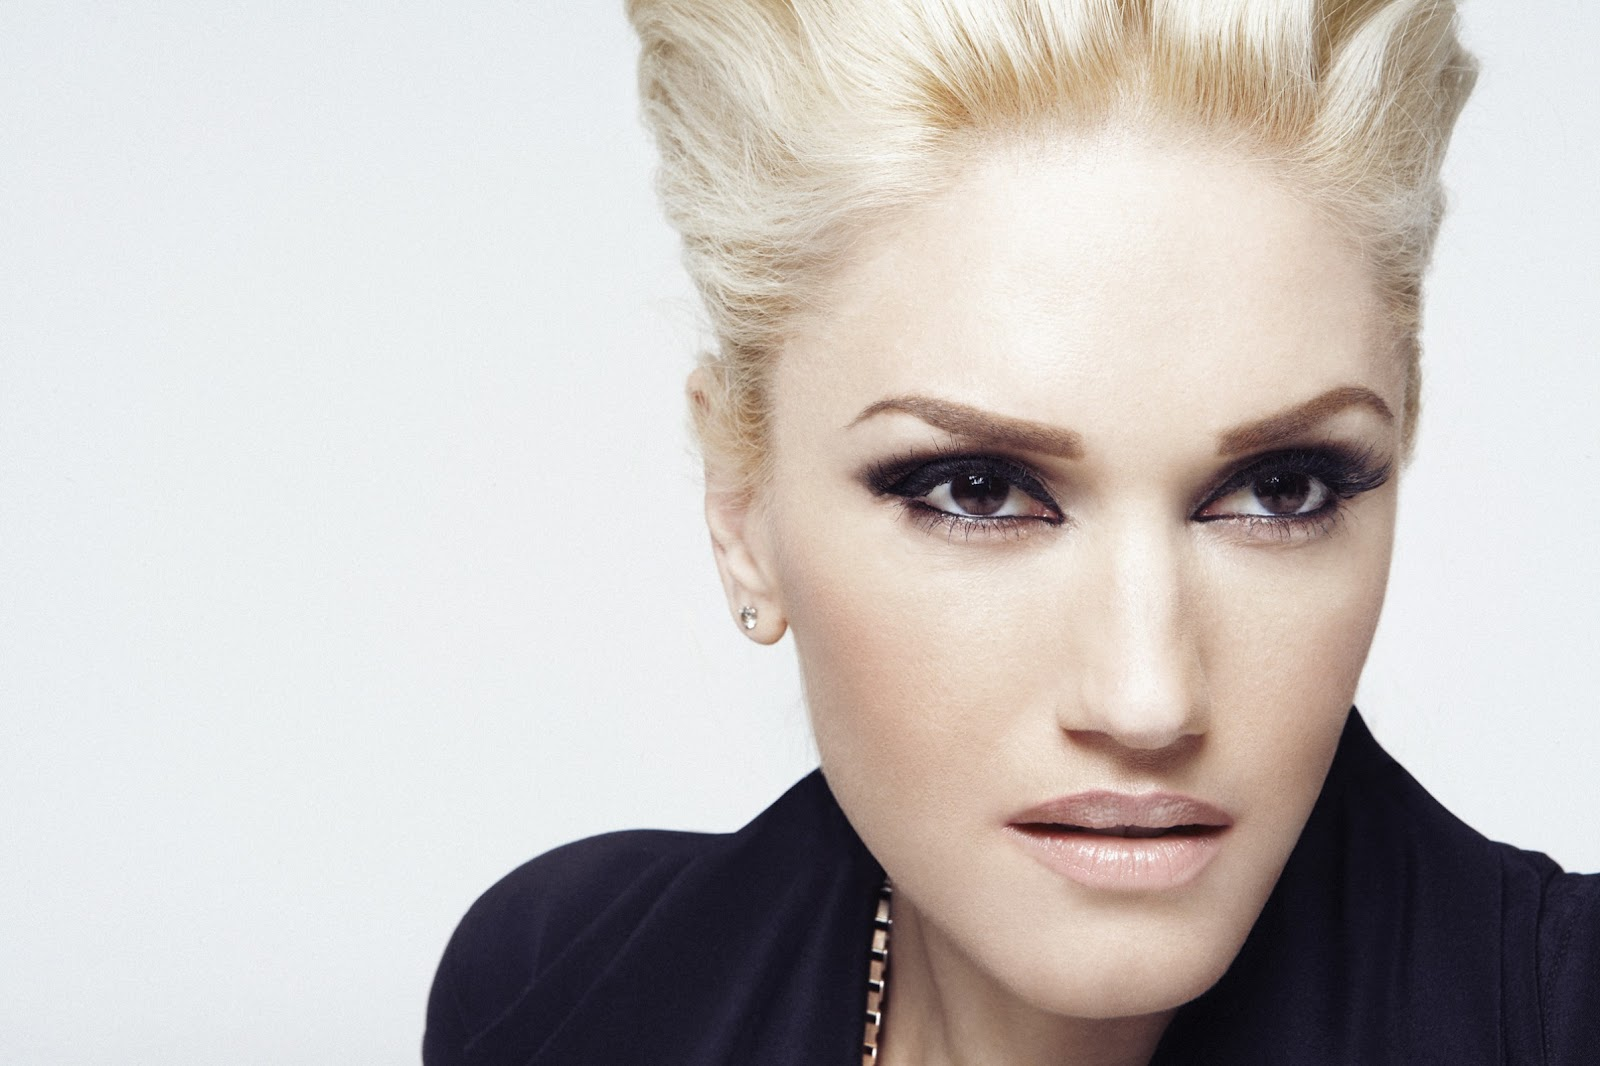 Gwen Stefani is a famous singer, at every appearance always looks ... Gwen Stefani